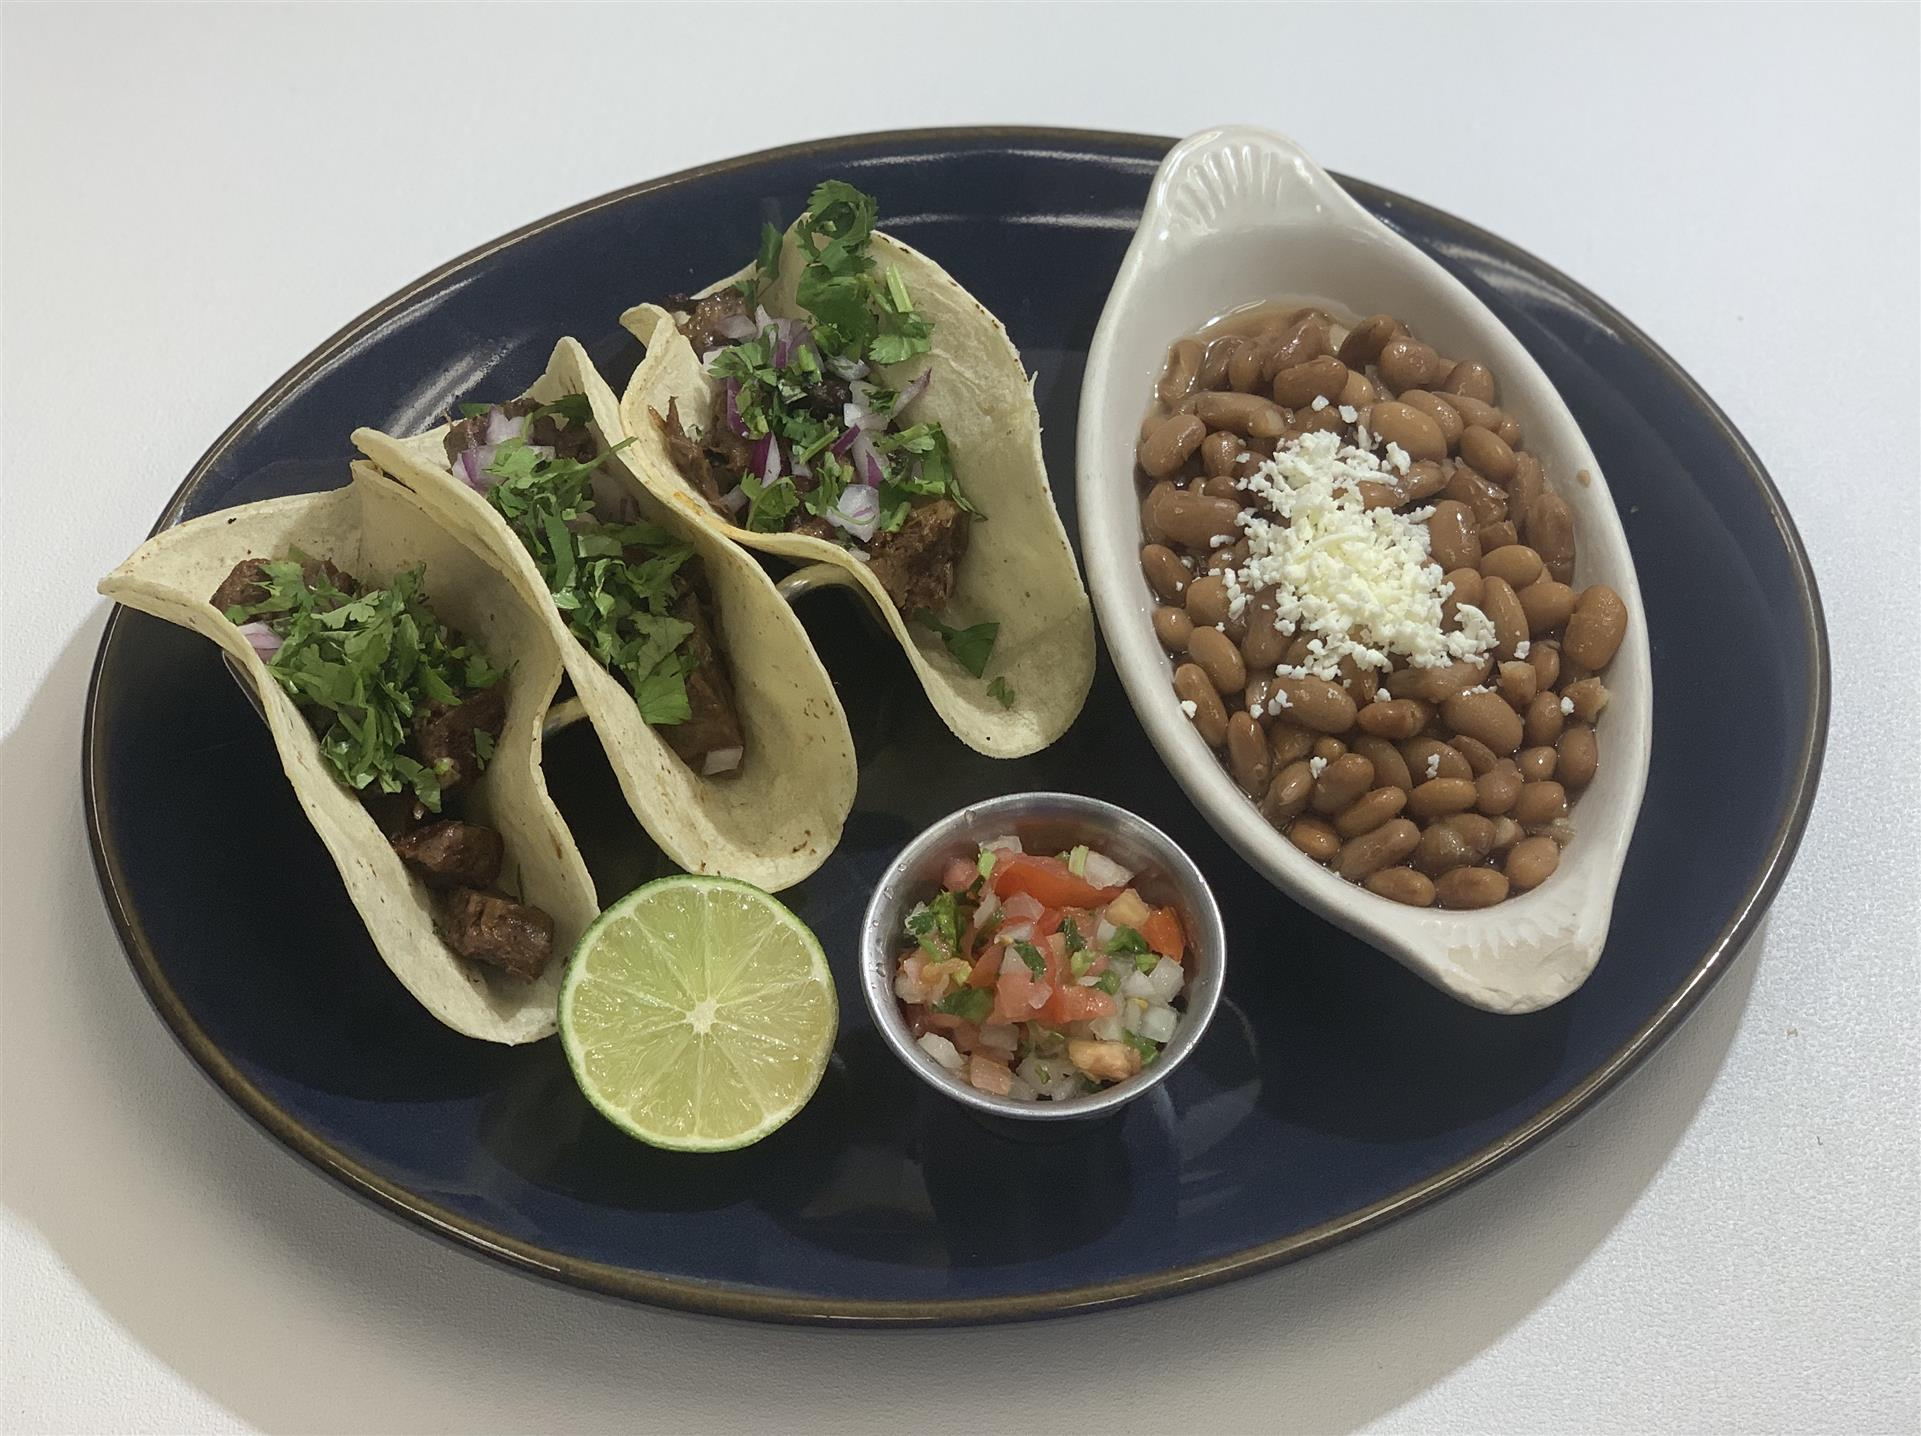 Three carne asada tacos served with whole beans, pico de gallo, chopped onions, cilantro, lime, and hot sauce